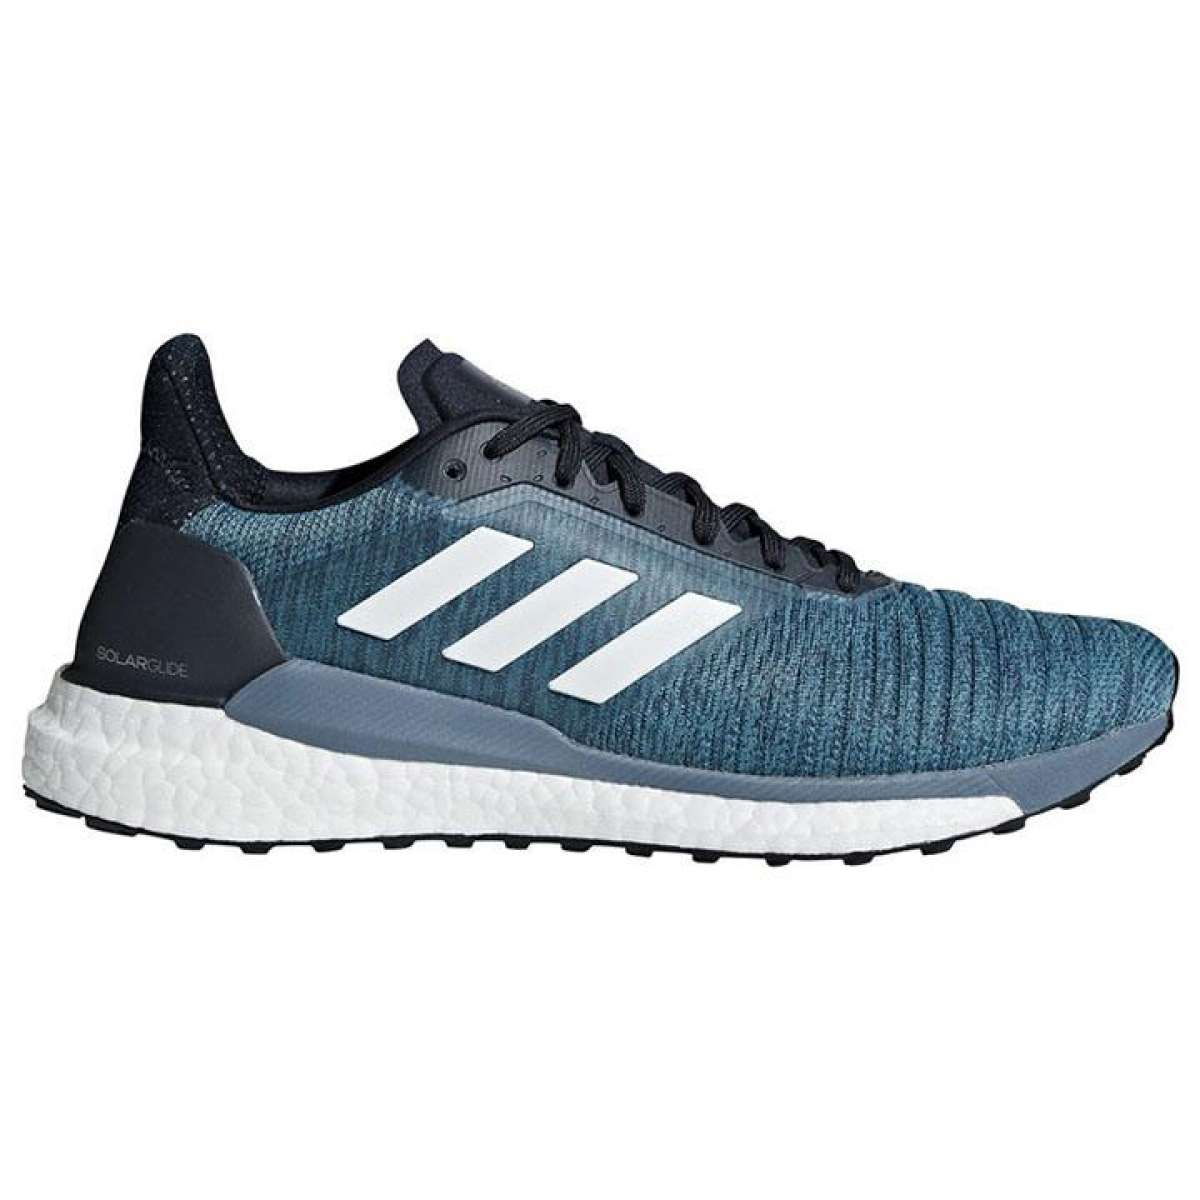 Adidas Ink Blue Solar Glide Running Shoes For Men - AQ0332